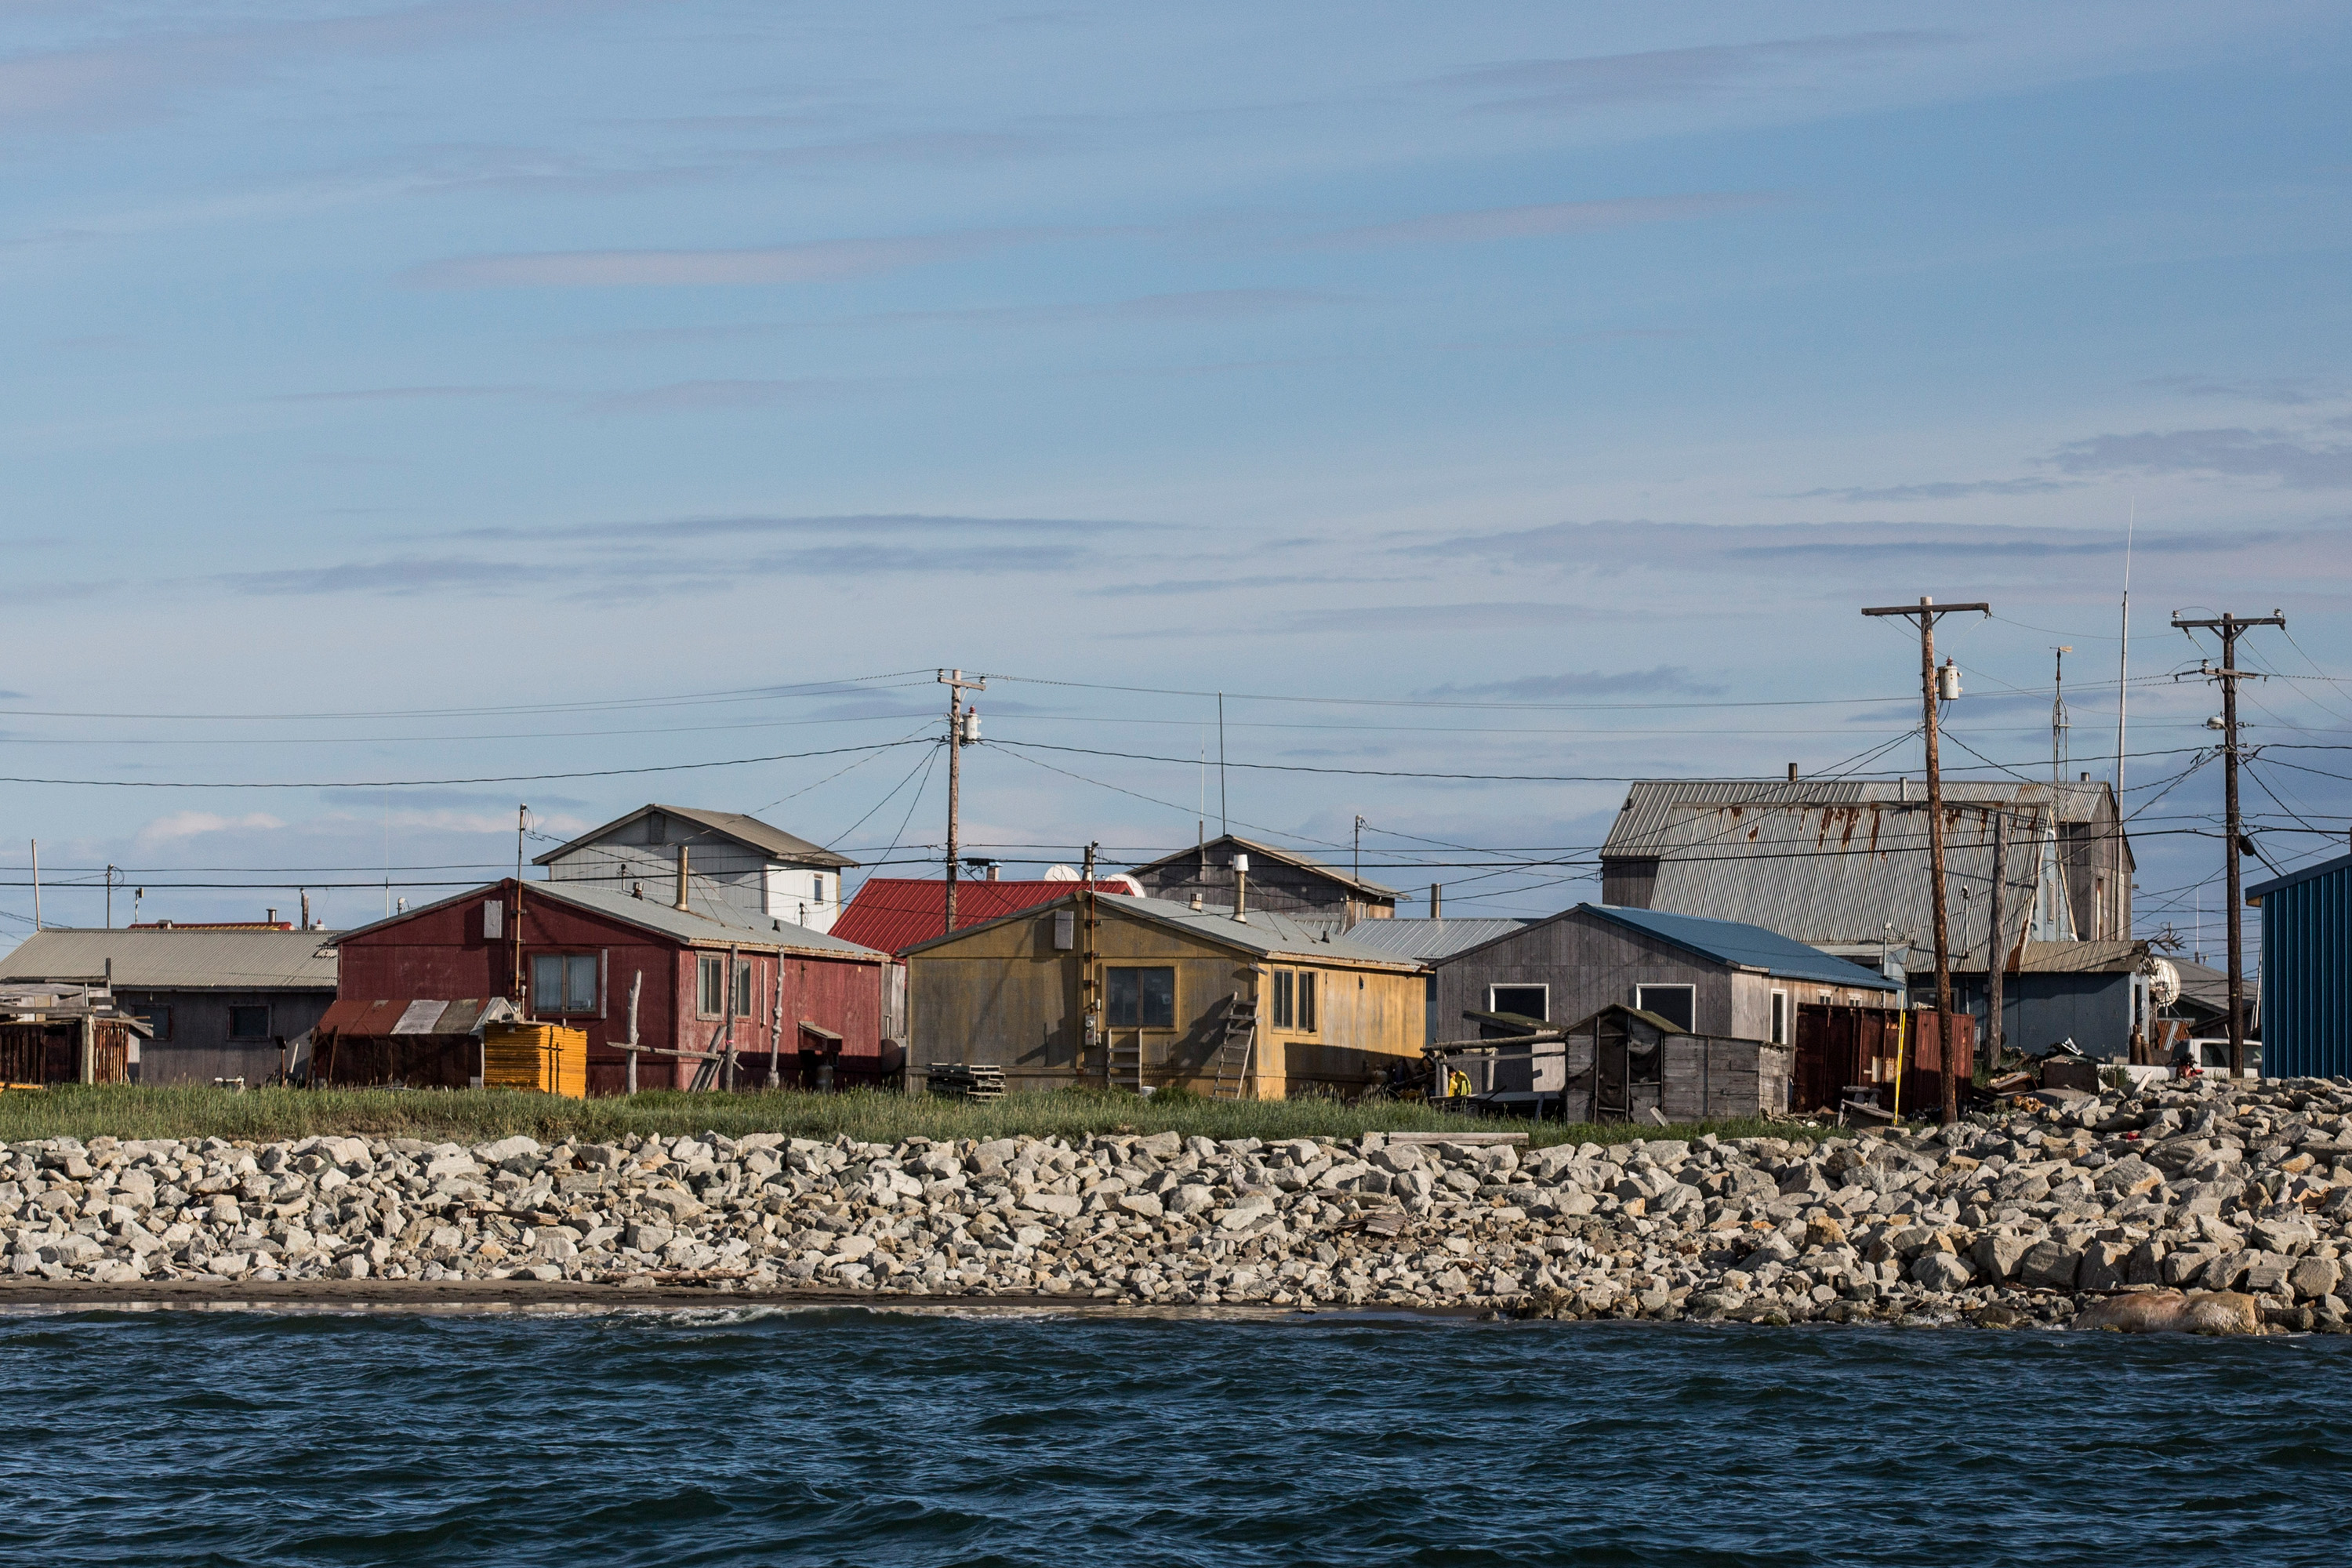 blog-trumps-budget-could-cause-infrastructure-crisis-for-rural-and-native-alaskans-1